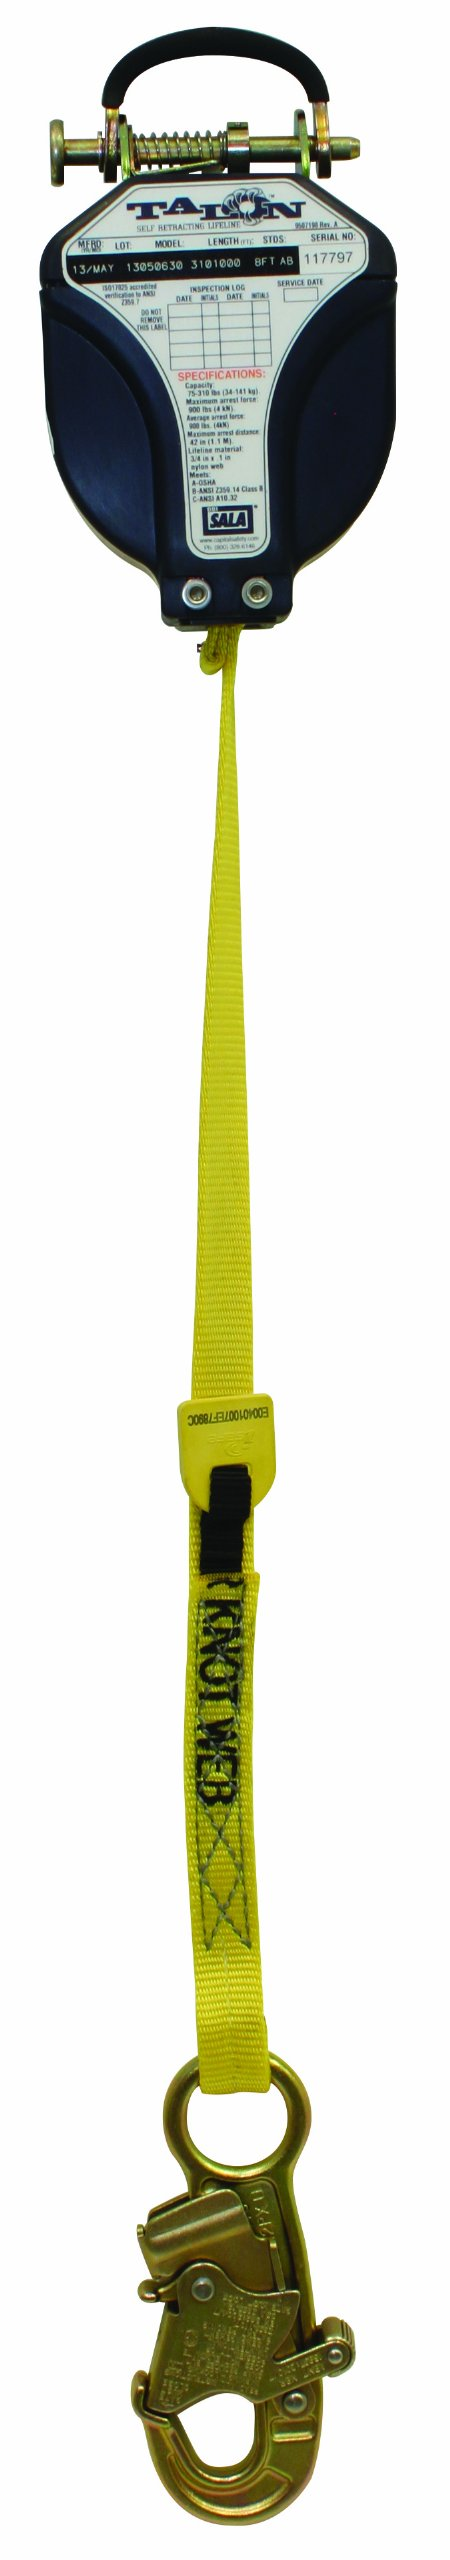 3M DBI-SALA Talon 3101000 Fall Protection SRL, 8', 1'' Nylon Web, Snap Hook and Quick Connector for Harness Mounting, Blue/Yellow